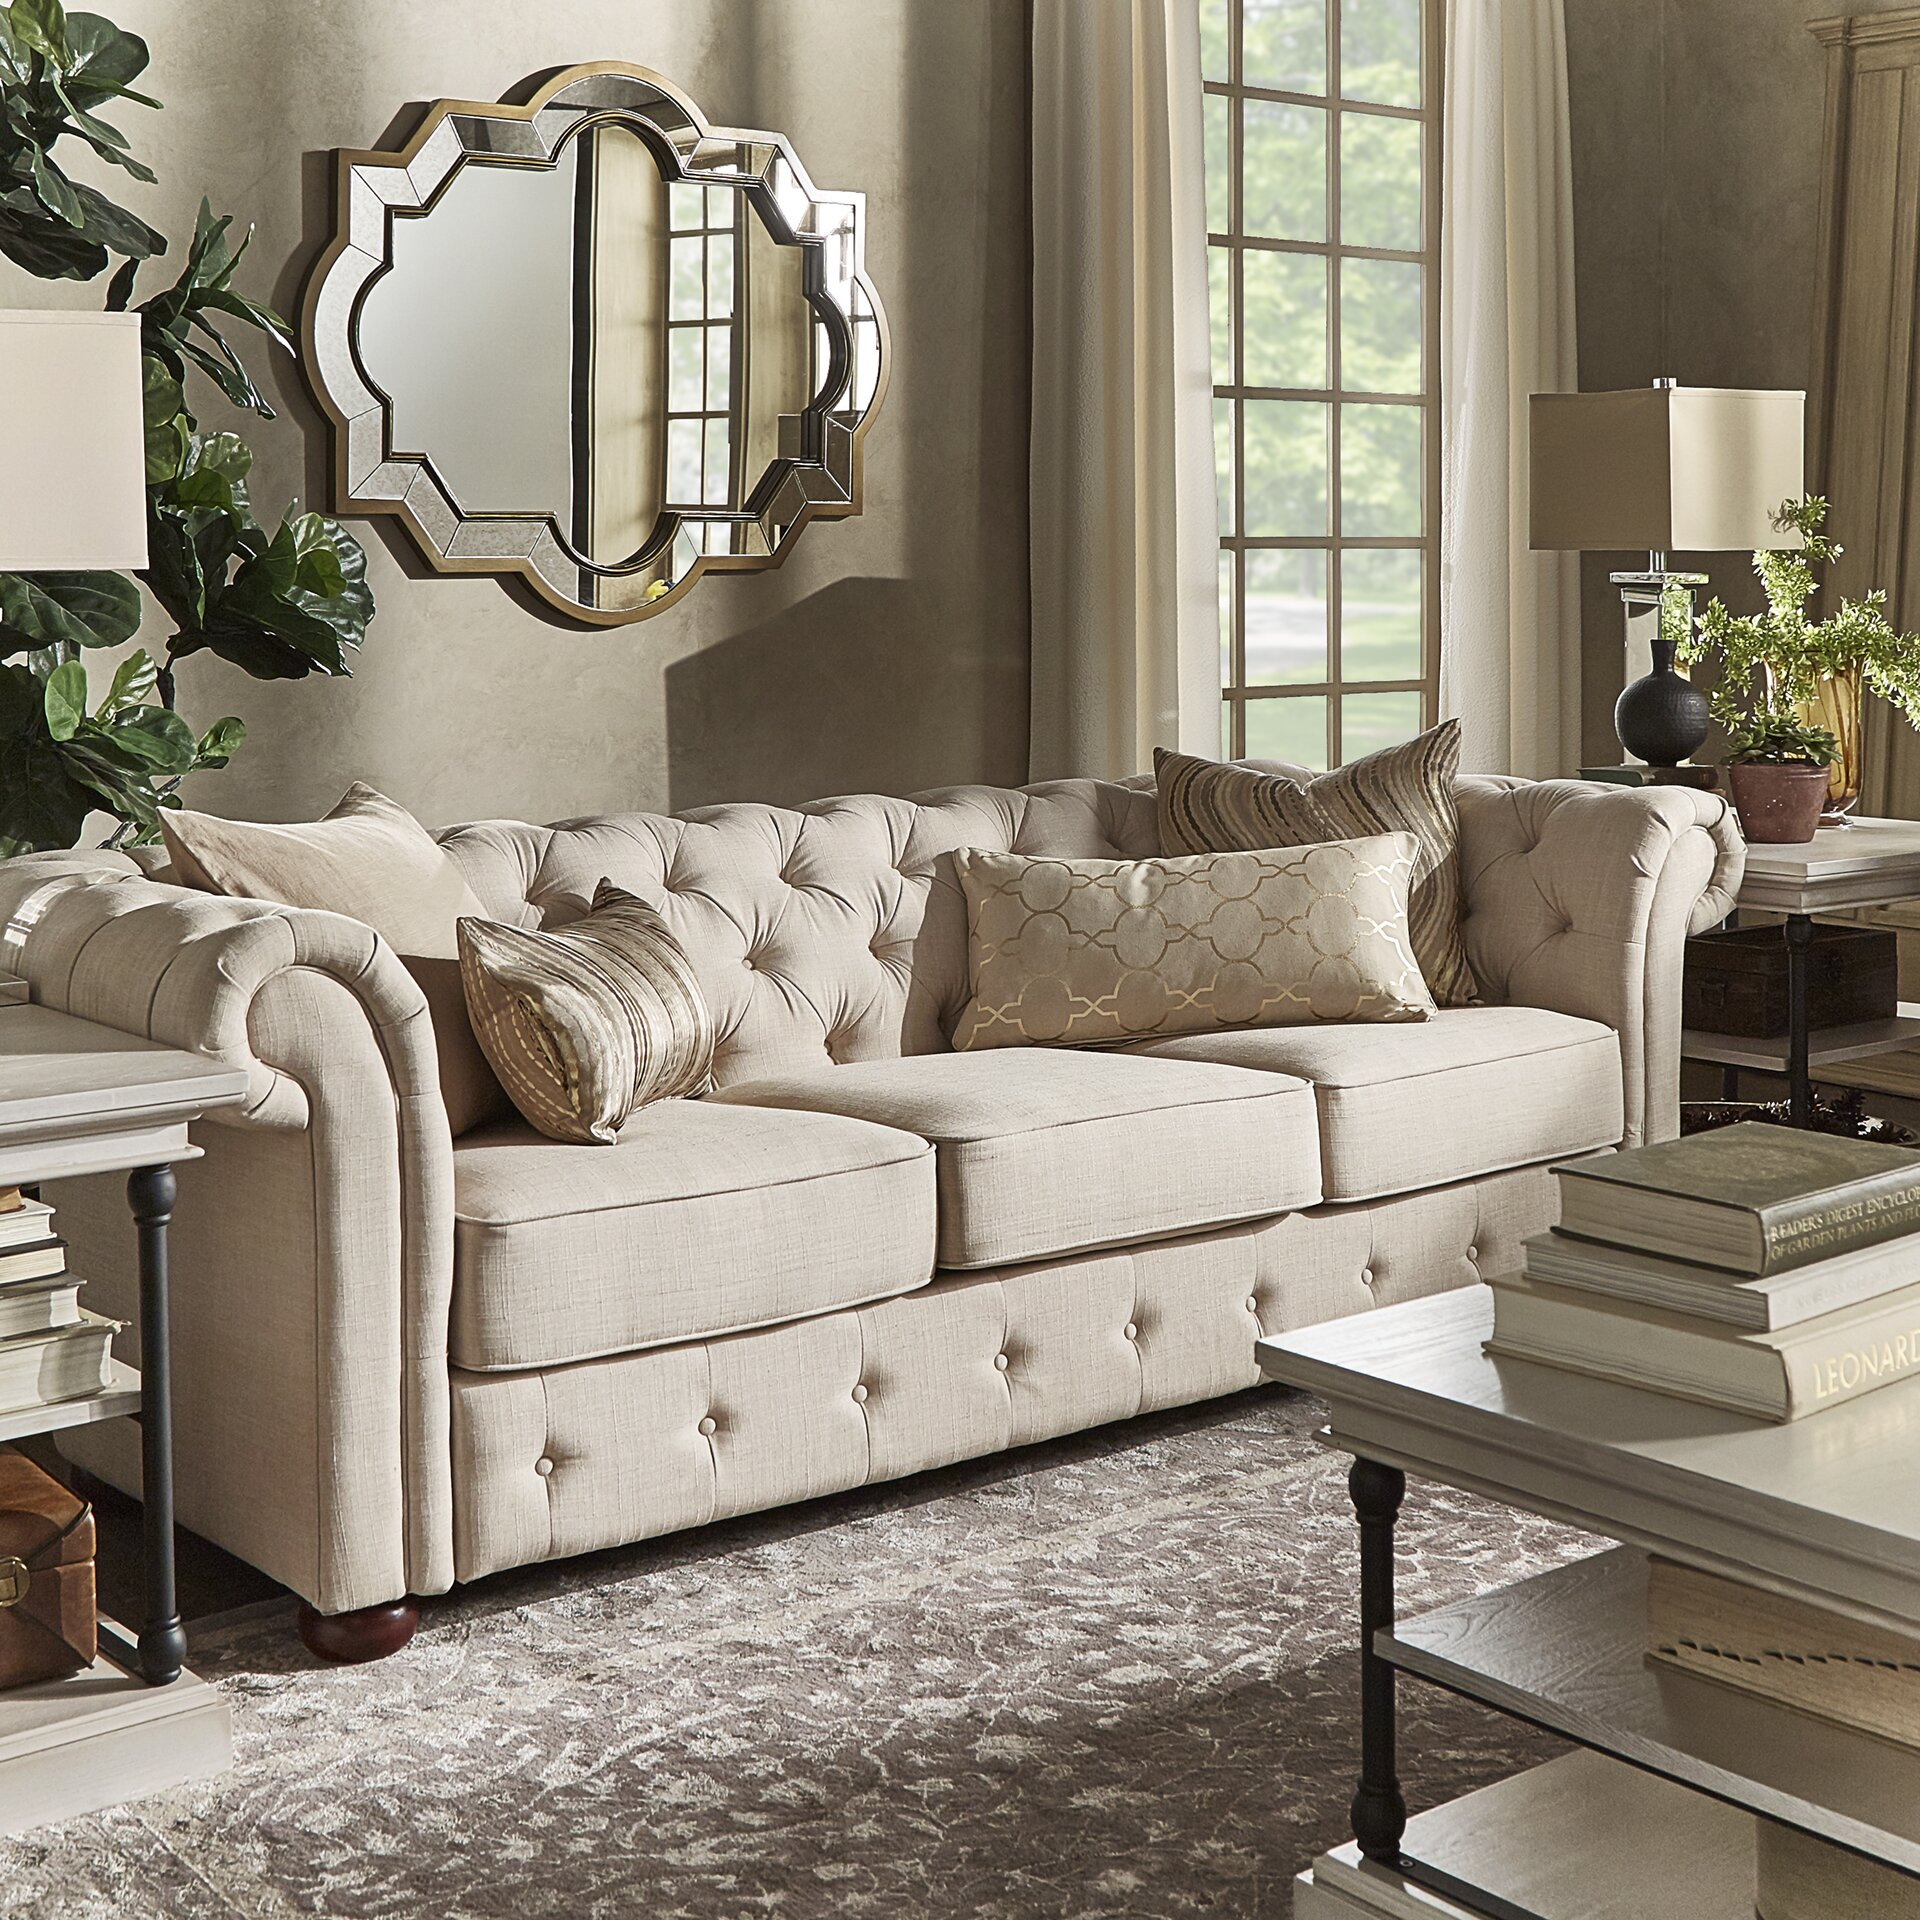 Darby Home Co Toulon Tufted Button Sofa & Reviews | Wayfair